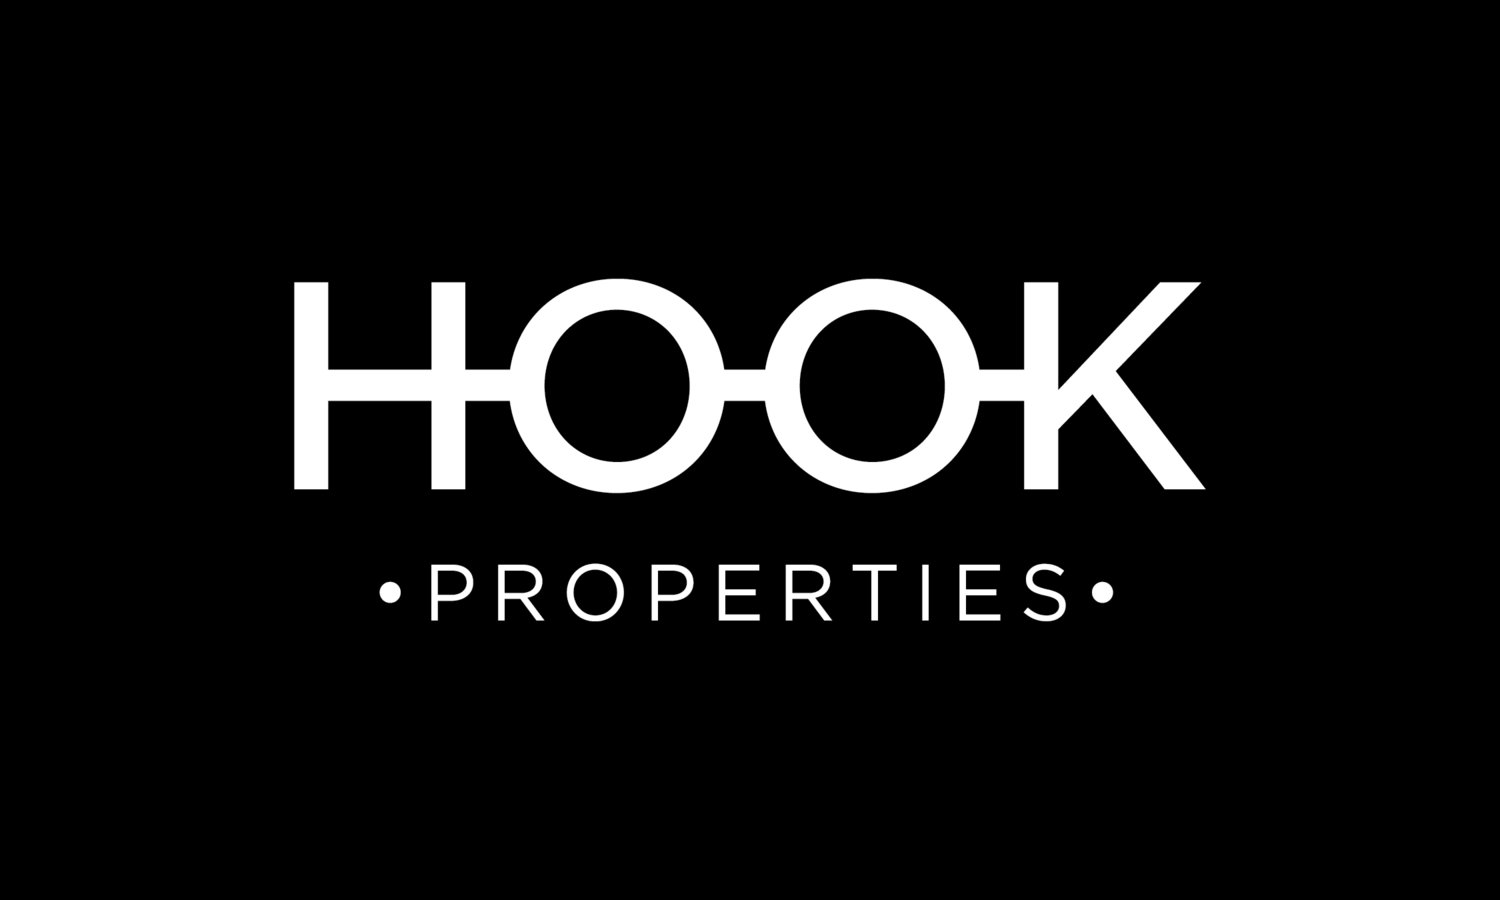 Hook Properties